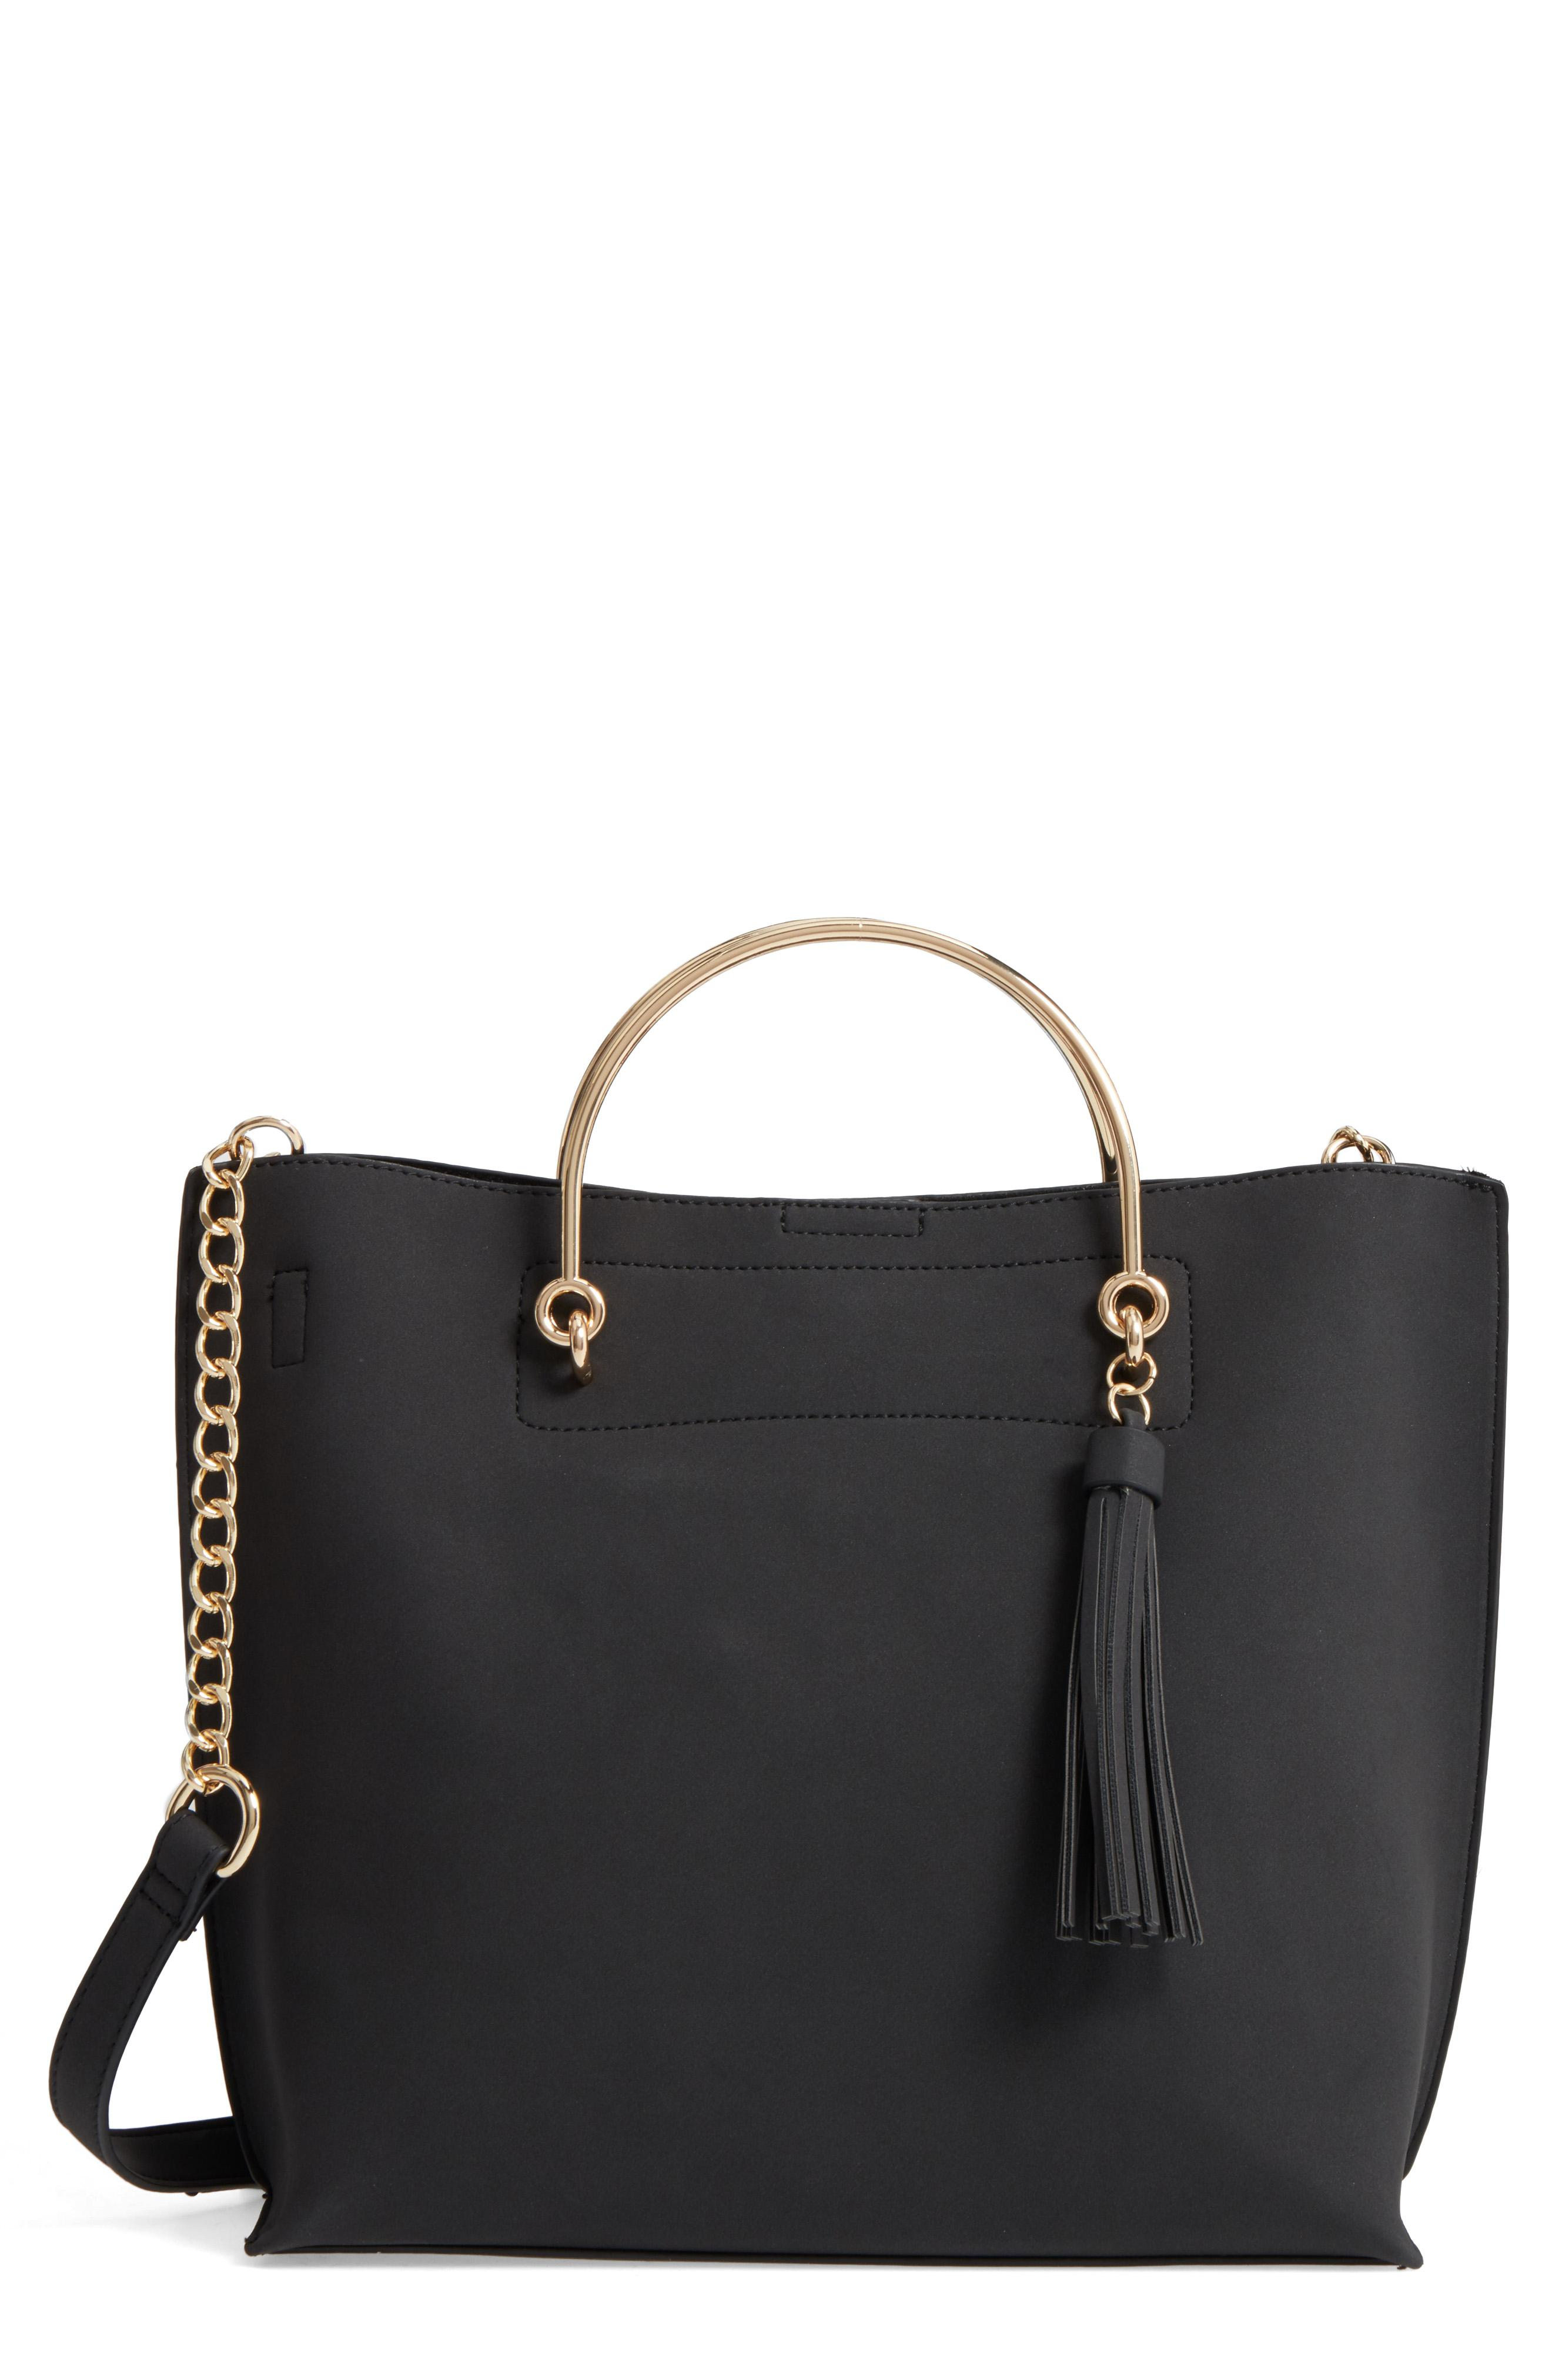 BP. Metal Handle Faux Leather Satchel from Nordstrom // Price: $45.00 //{&amp;nbsp;}(Image: Nordstrom // Nordstrom.com)<p></p>